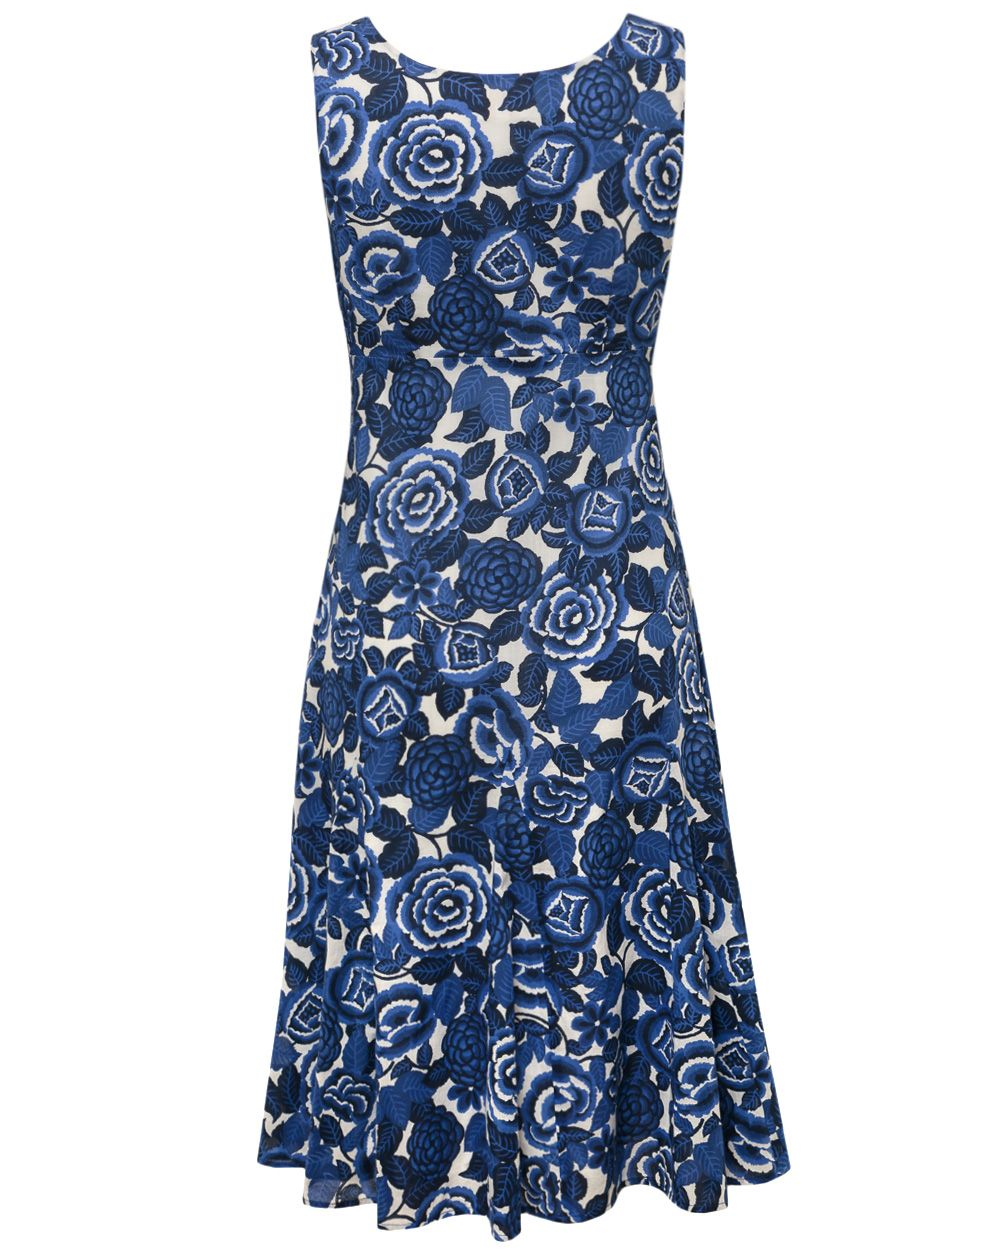 Marlene Print Cotton Dress